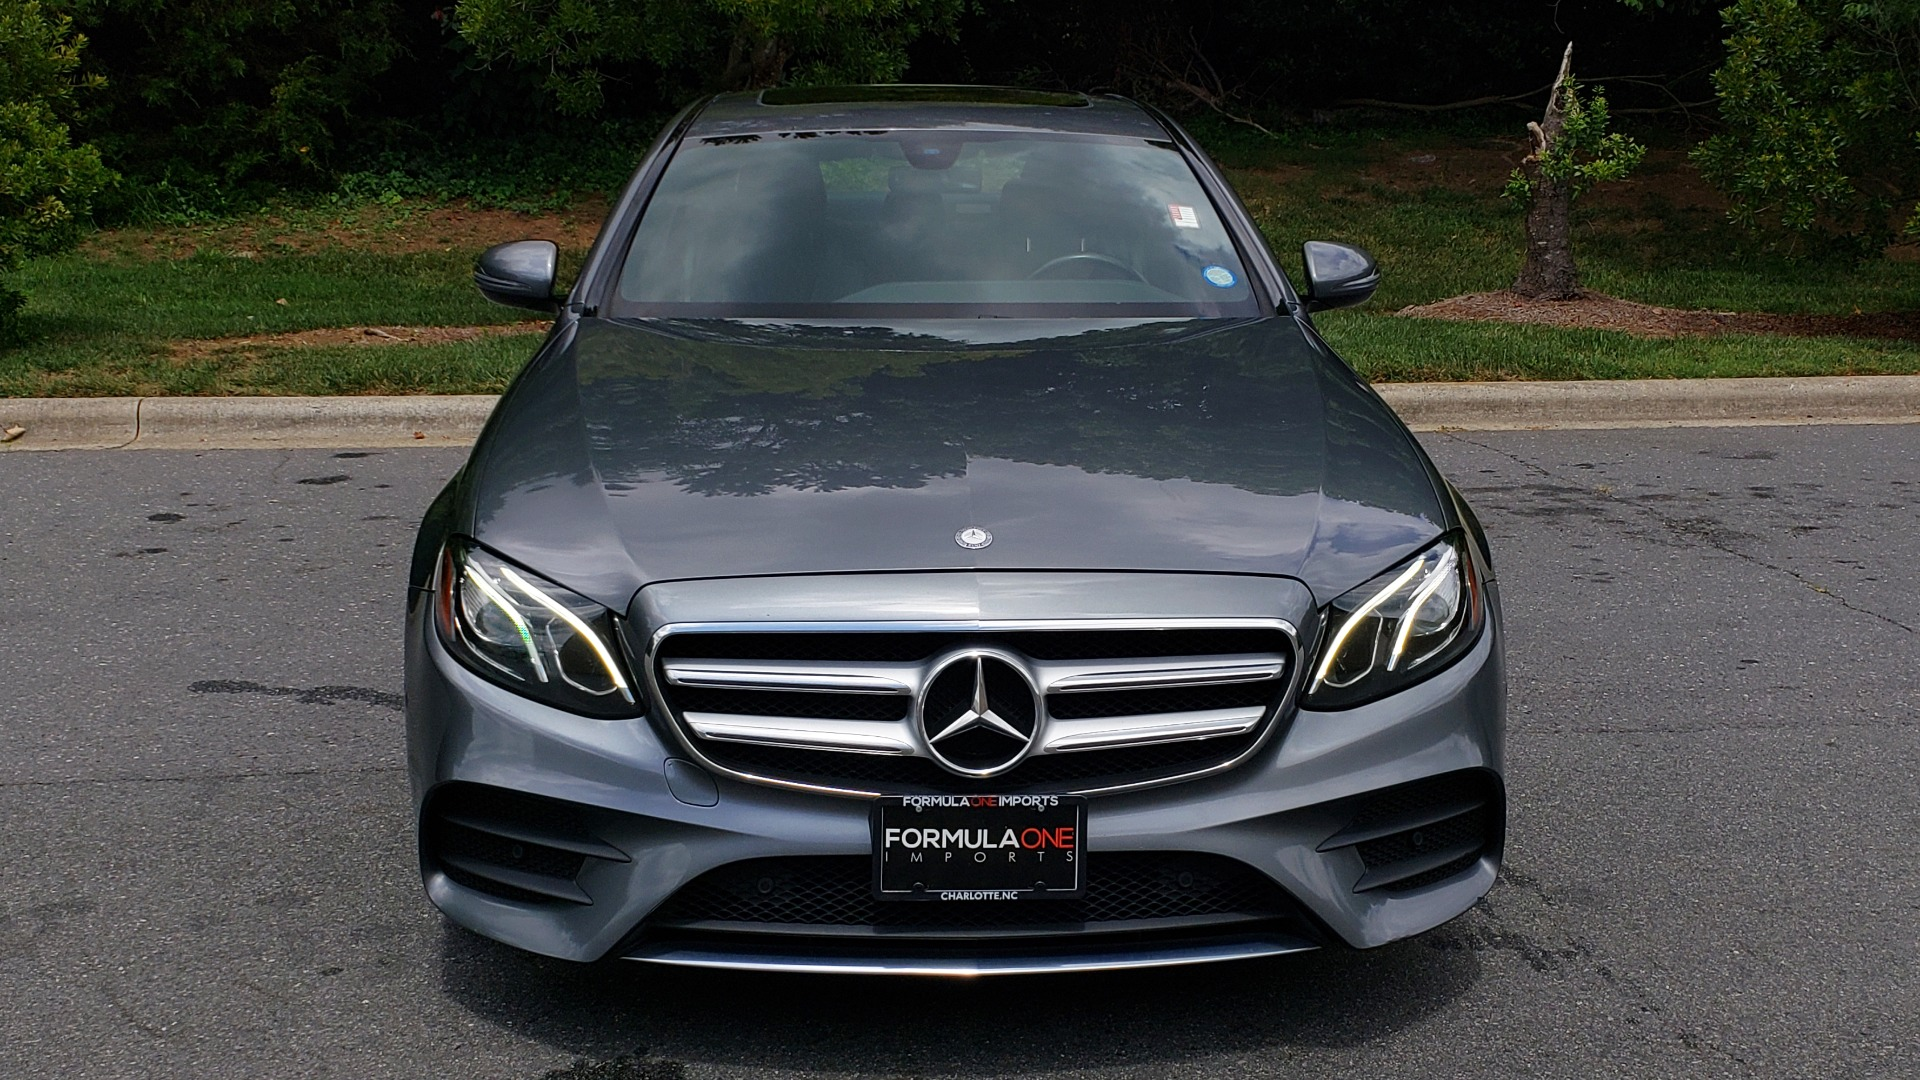 Used 2017 Mercedes-Benz E-Class E 300 4MATIC PREMIUM / SPORT / NAV / BURMESTER / HTD STS / REARVIEW for sale $30,495 at Formula Imports in Charlotte NC 28227 15